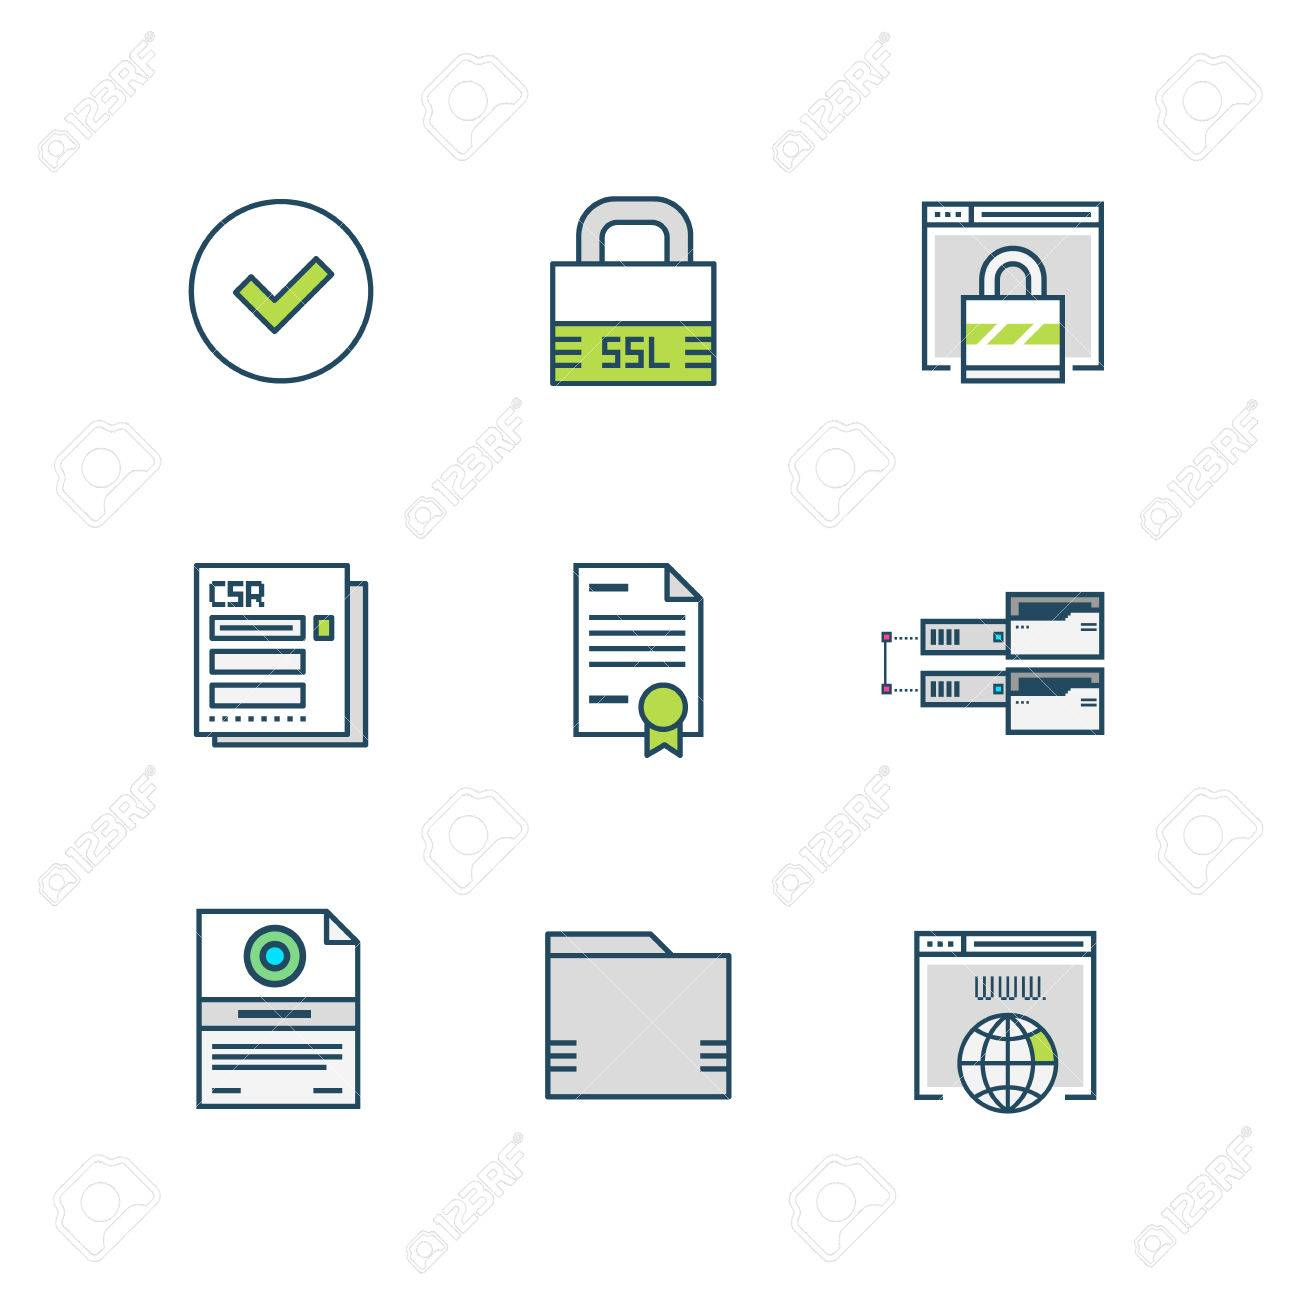 Ssl certificate icons royalty free cliparts vectors and stock ssl certificate icons stock vector 82595971 xflitez Gallery